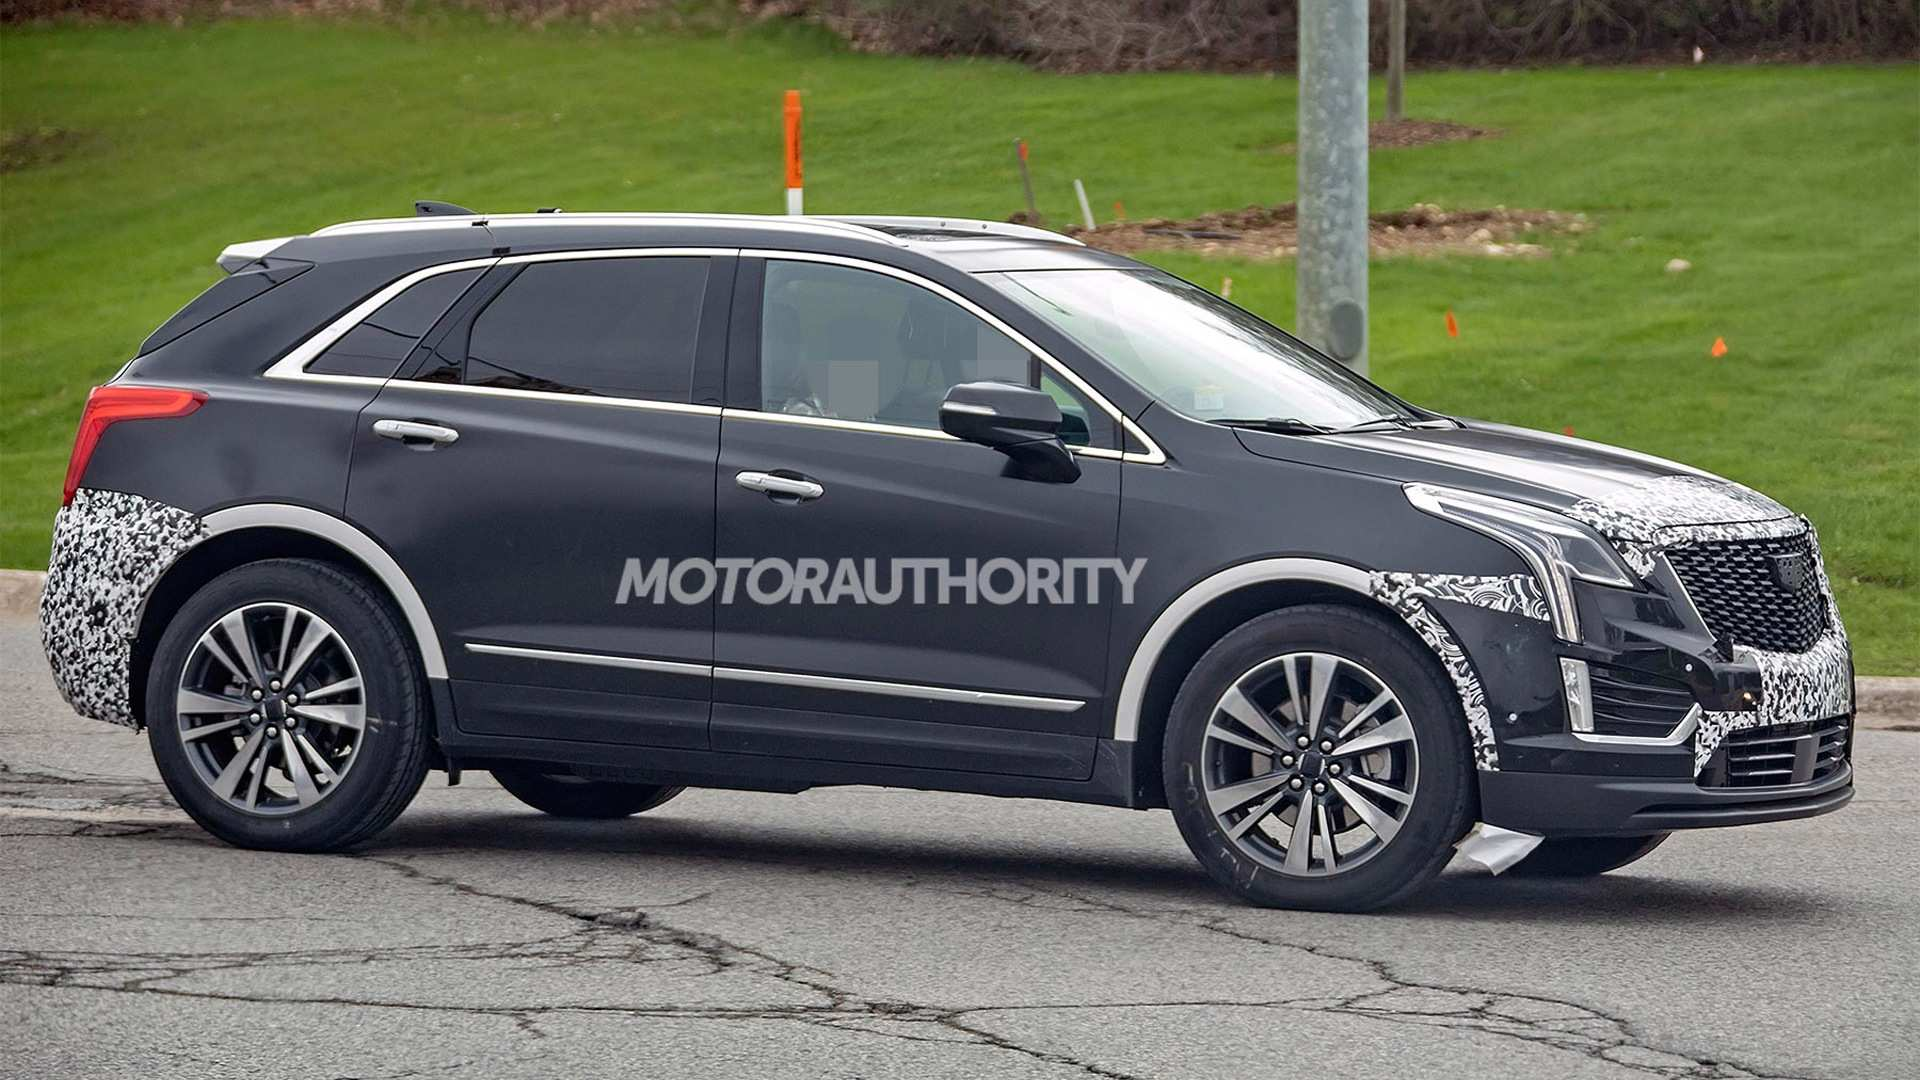 82 New 2019 Spy Shots Cadillac Xt5 Concept with 2019 Spy Shots Cadillac Xt5